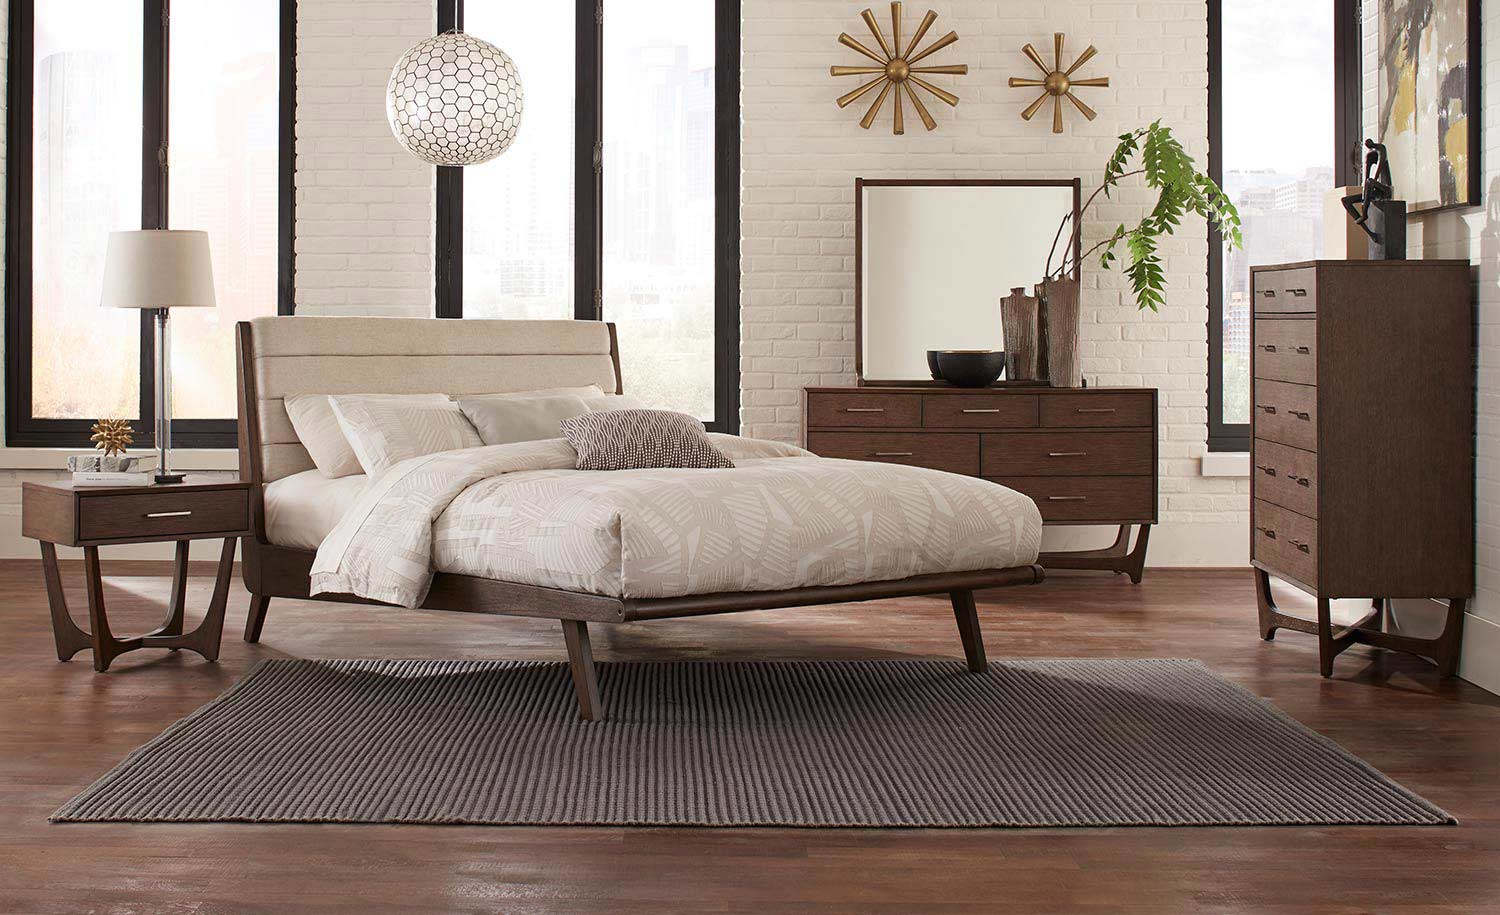 Homelegance Ruote Upholstered Platform Bedroom Set - Brown-Gray